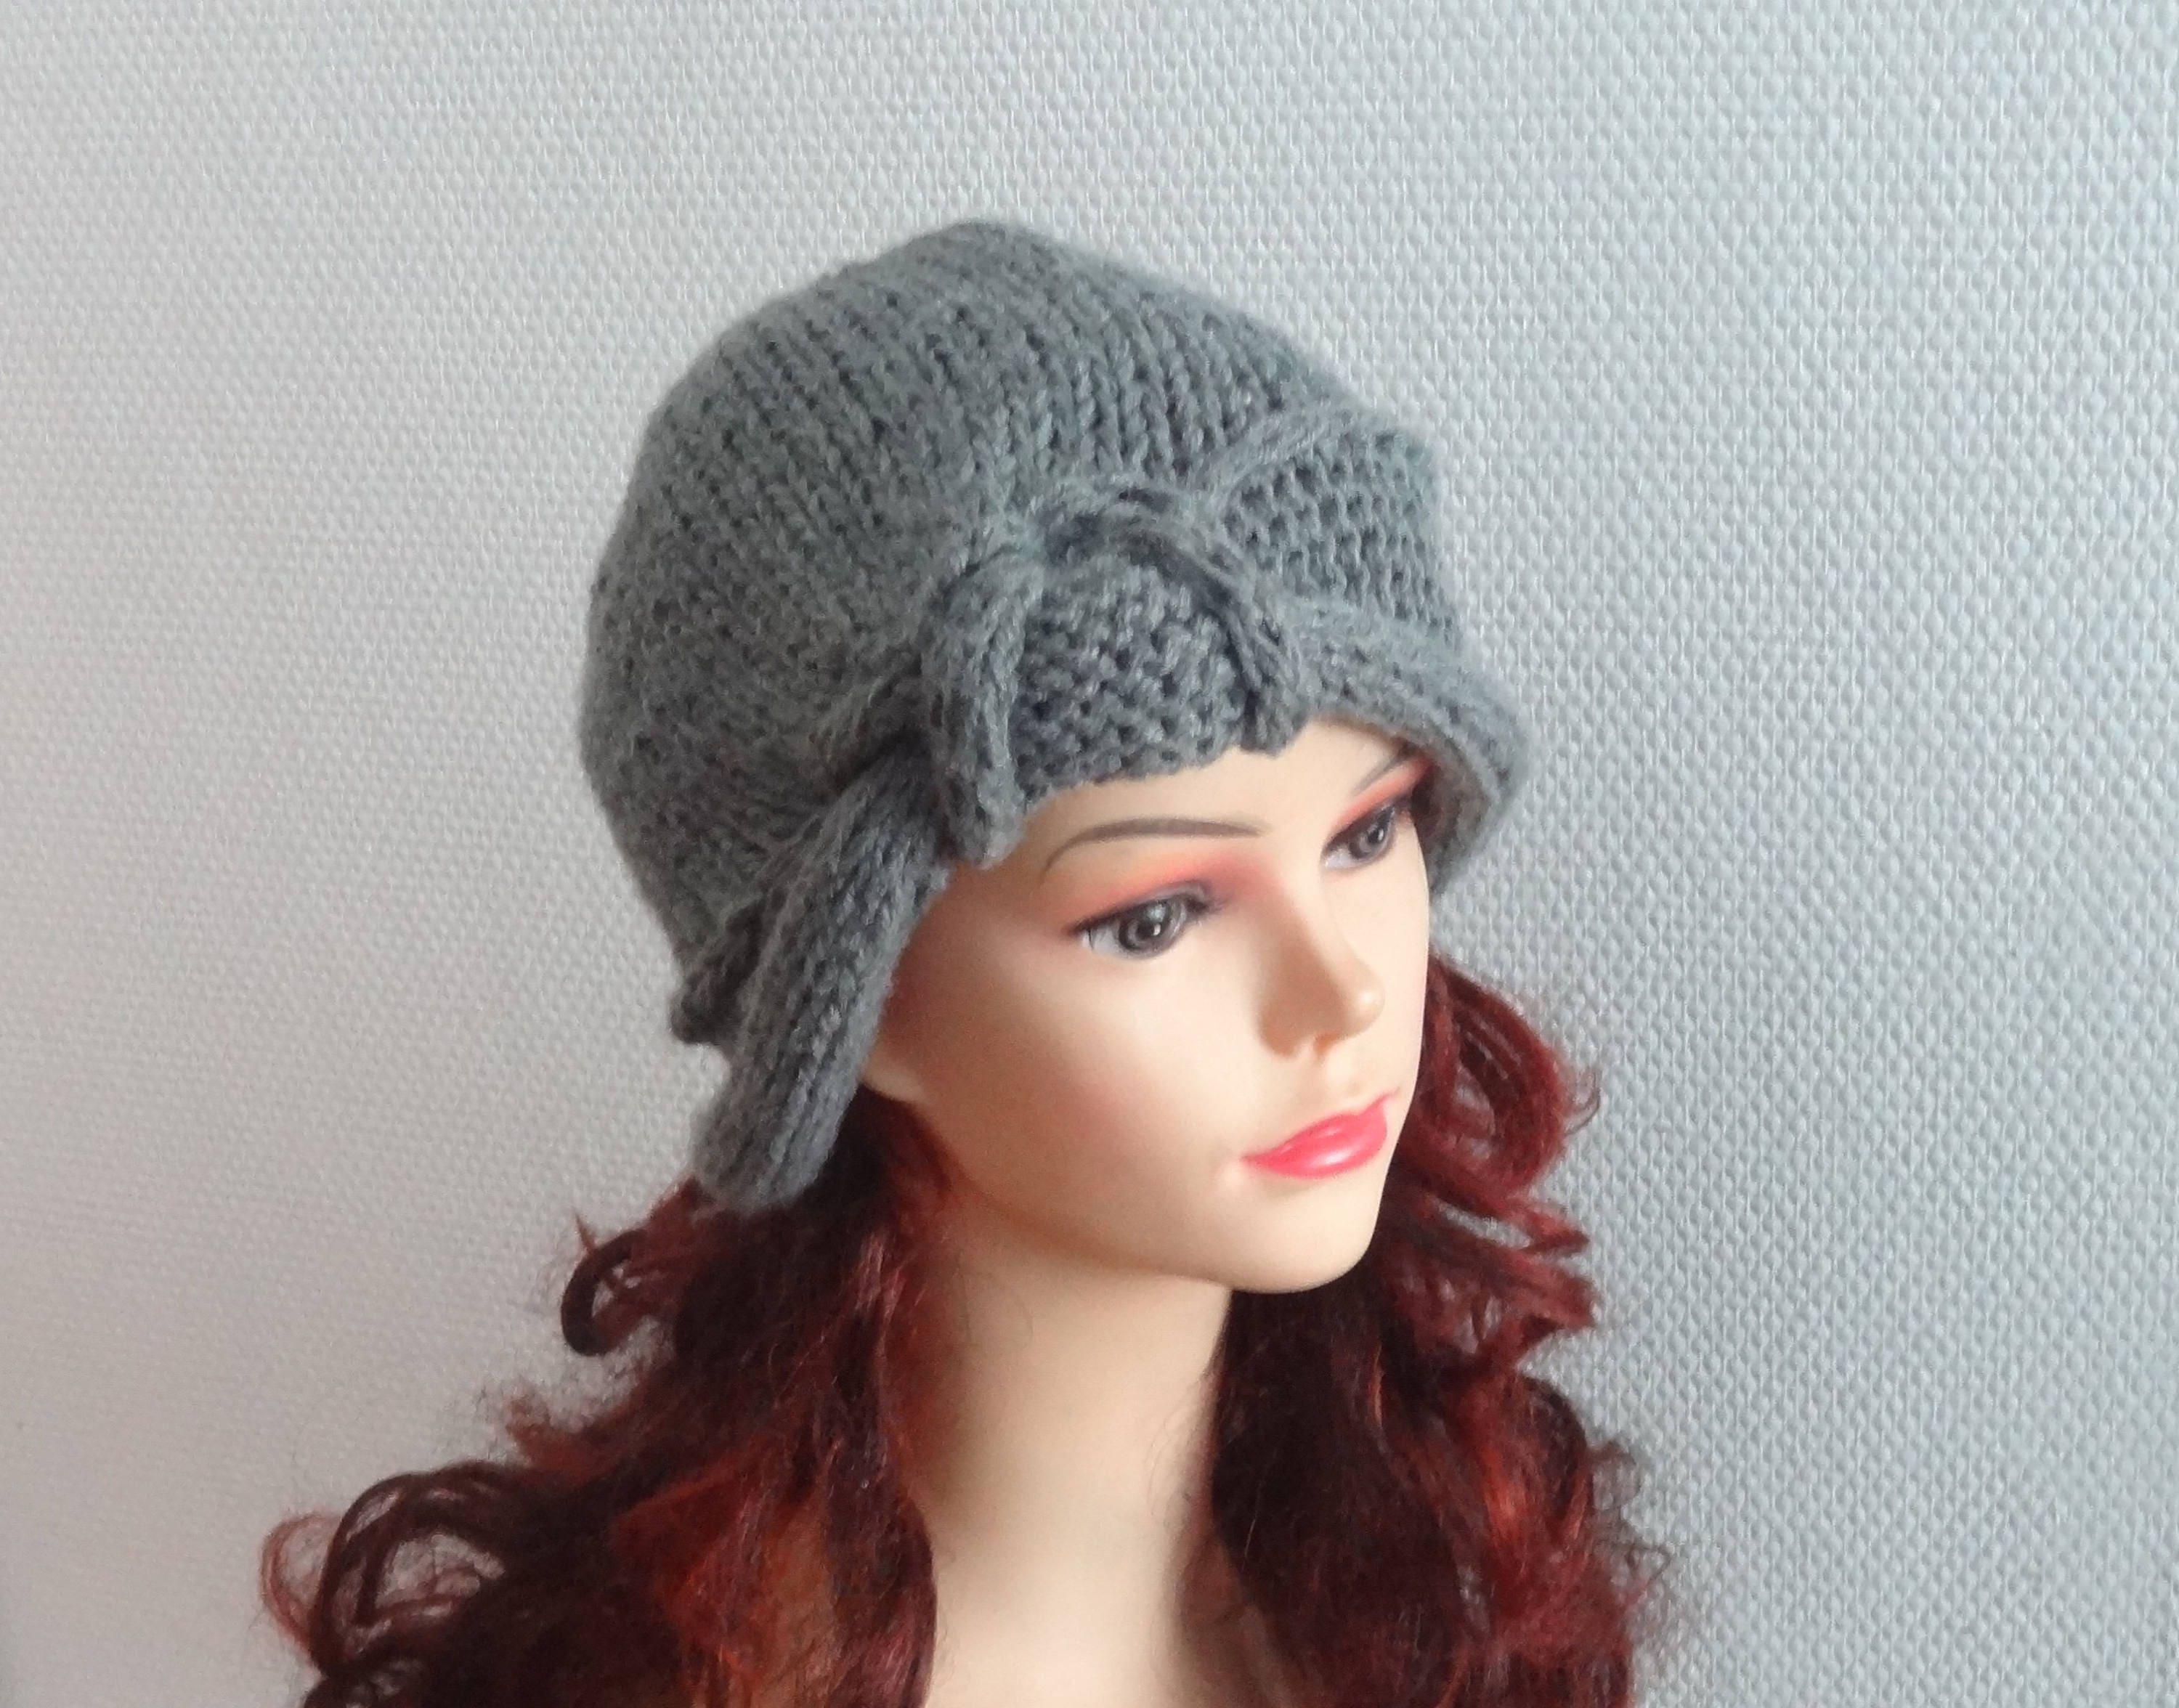 Womens Hats Chemo hat winter hat Gift for her turban Hat  ea7bd41b887